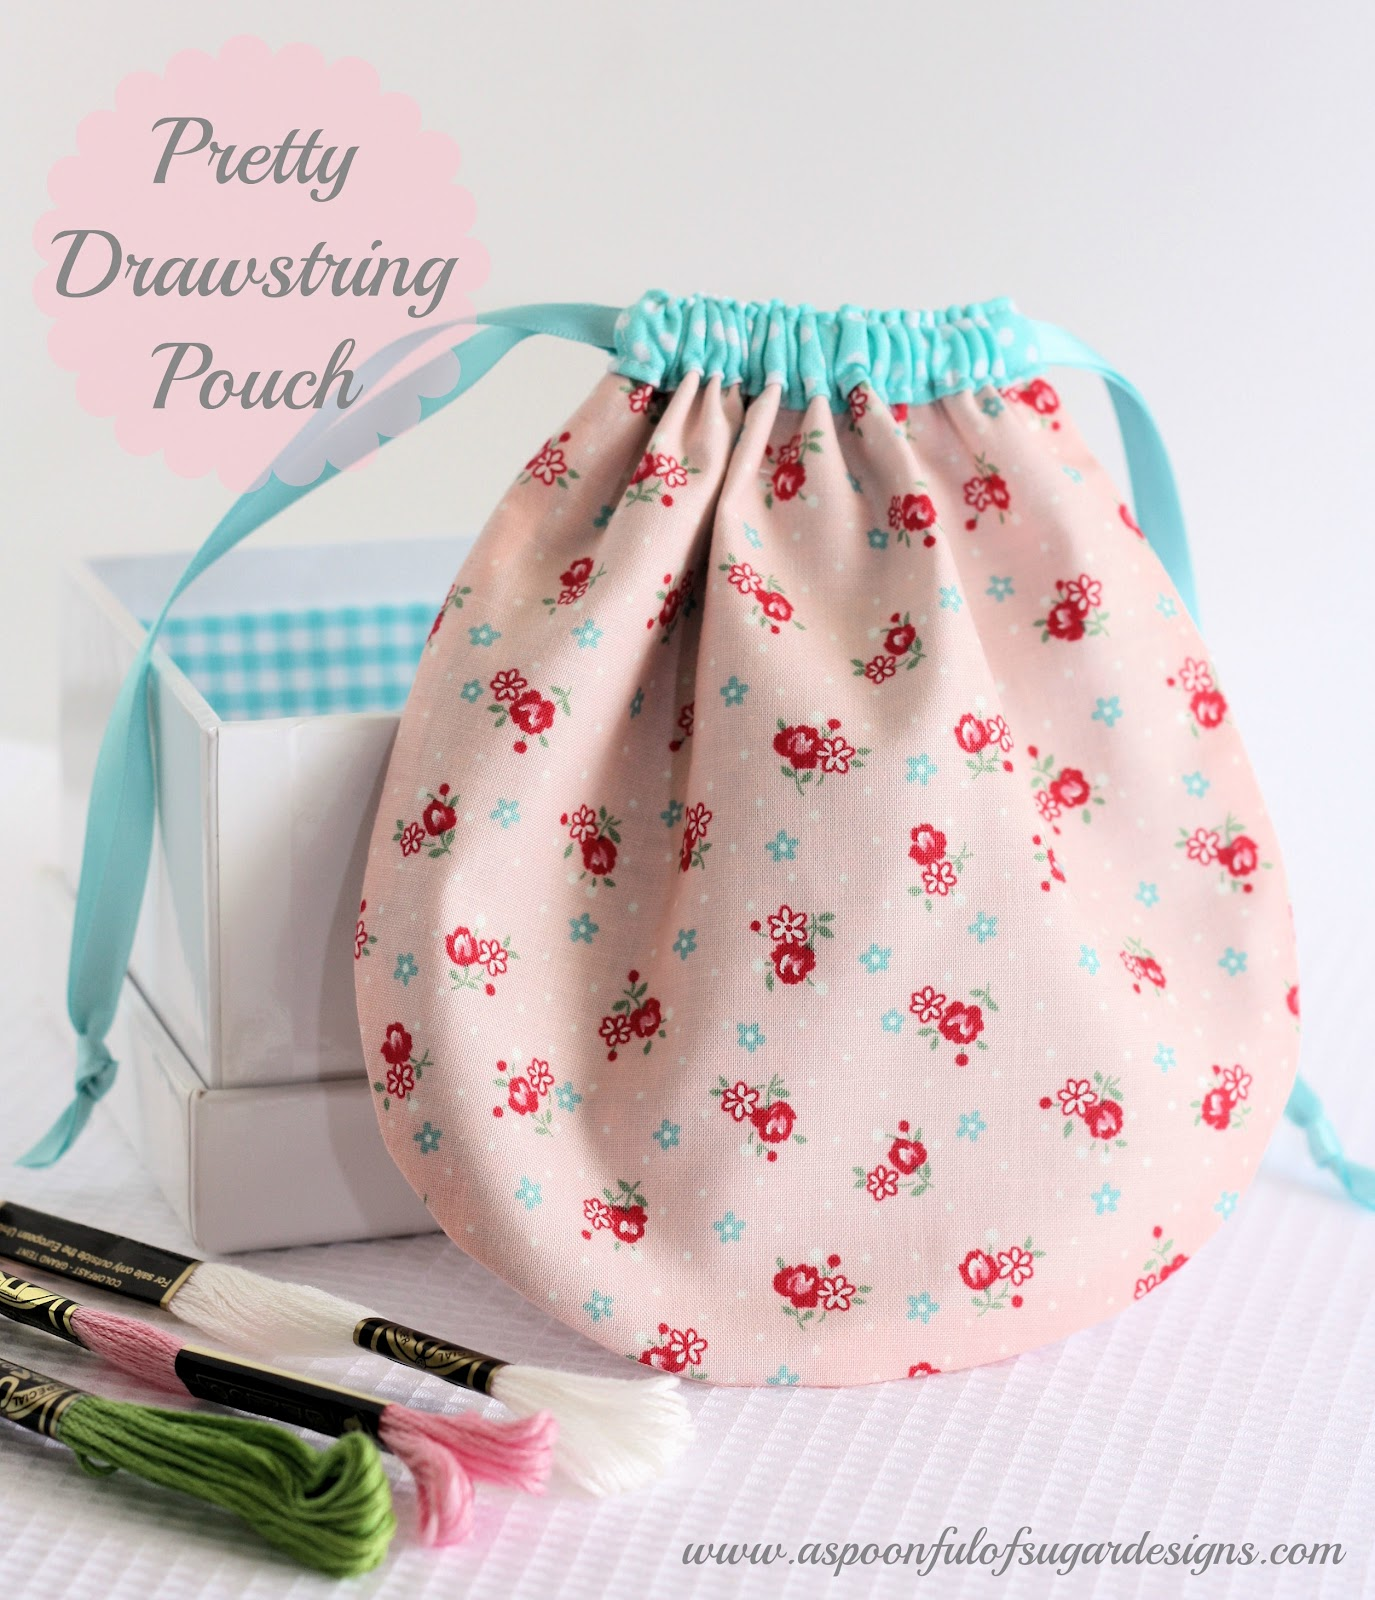 Pretty Drawstring Pouch Tutorial A Spoonful Of Sugar